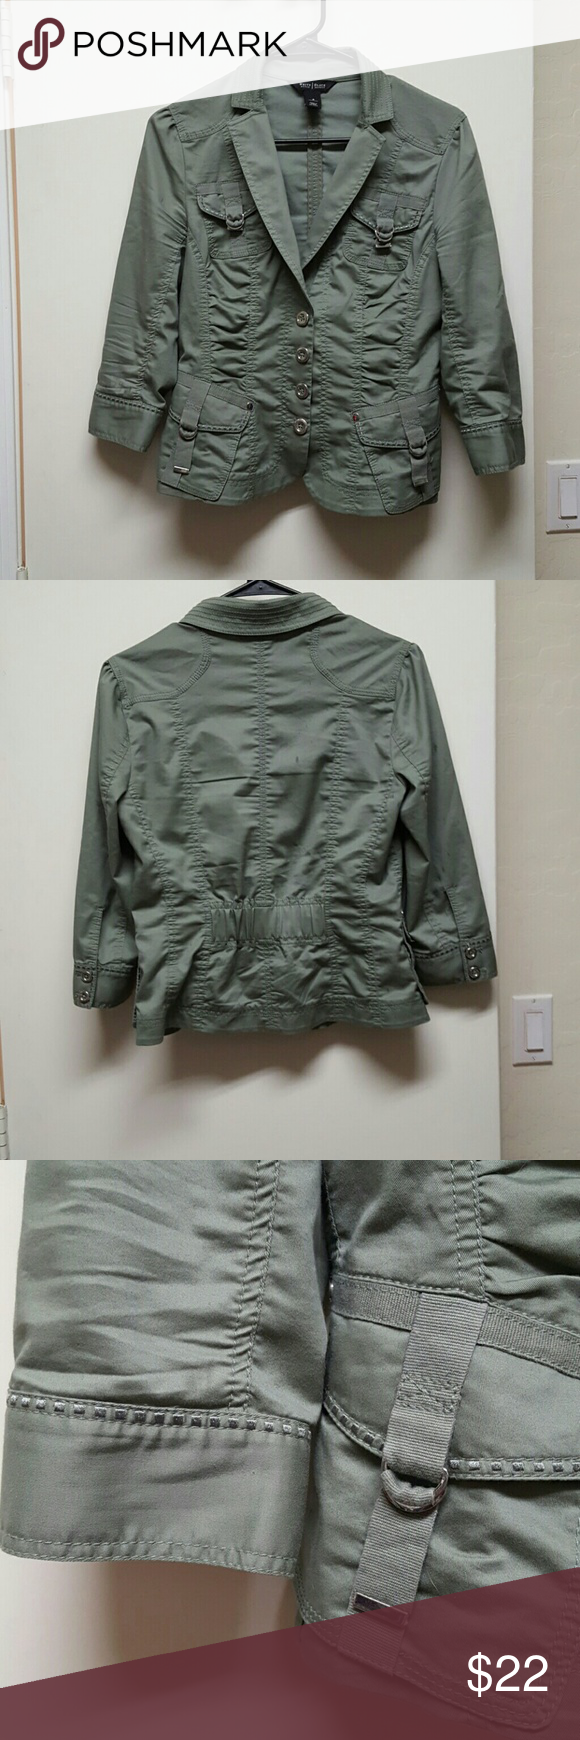 Military/cargo light jacket *PRICE DROP! Olive green with 3/4 sleeves, silver buttons & buckles, and unique stitching. Rouched in places with back waistband for shape. Barely worn. Machine wash. White House Black Market Jackets & Coats Blazers